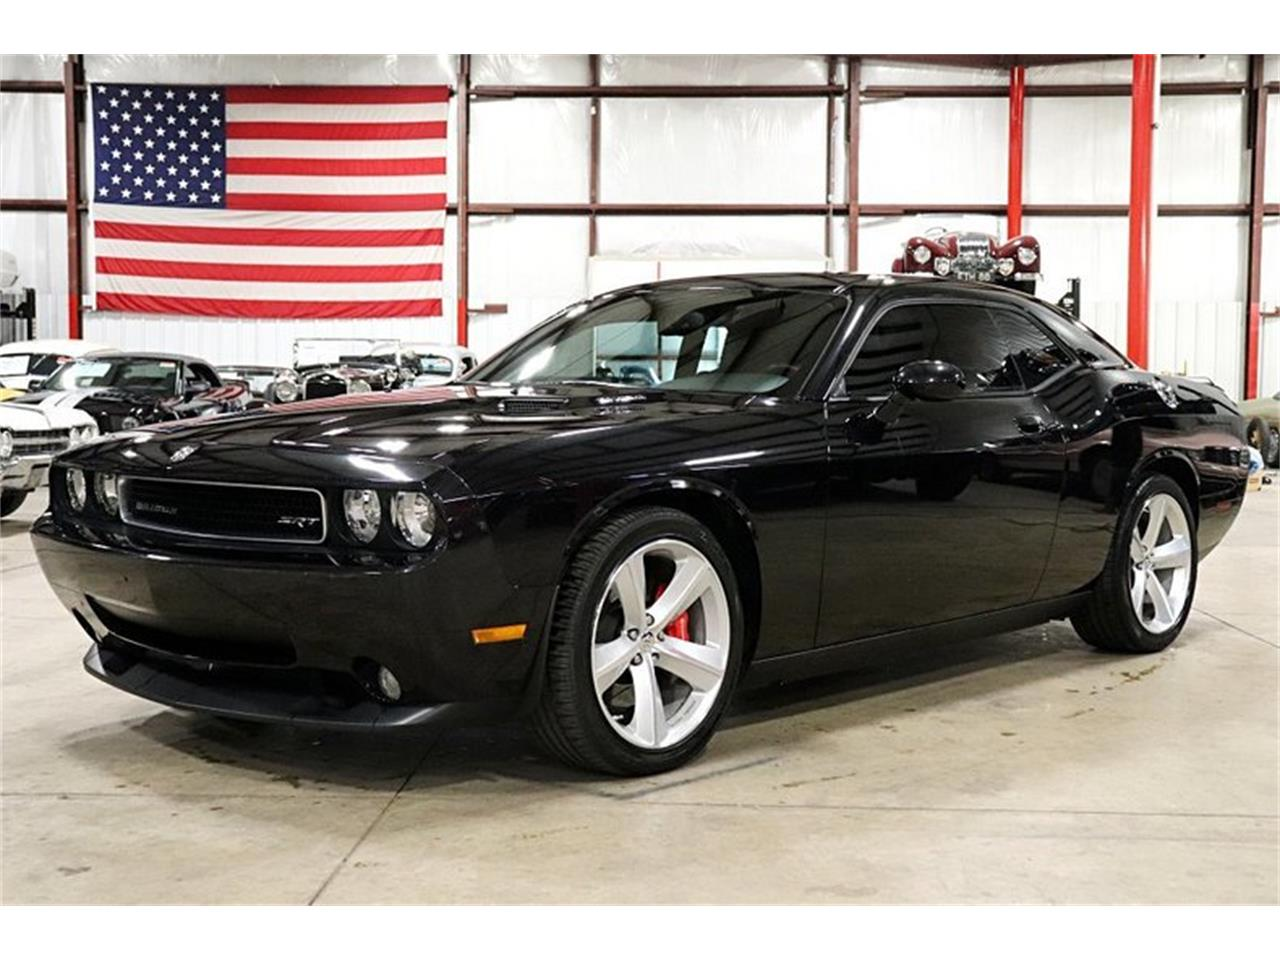 Large Picture of '10 Dodge Challenger located in Michigan - $26,900.00 - PWGQ